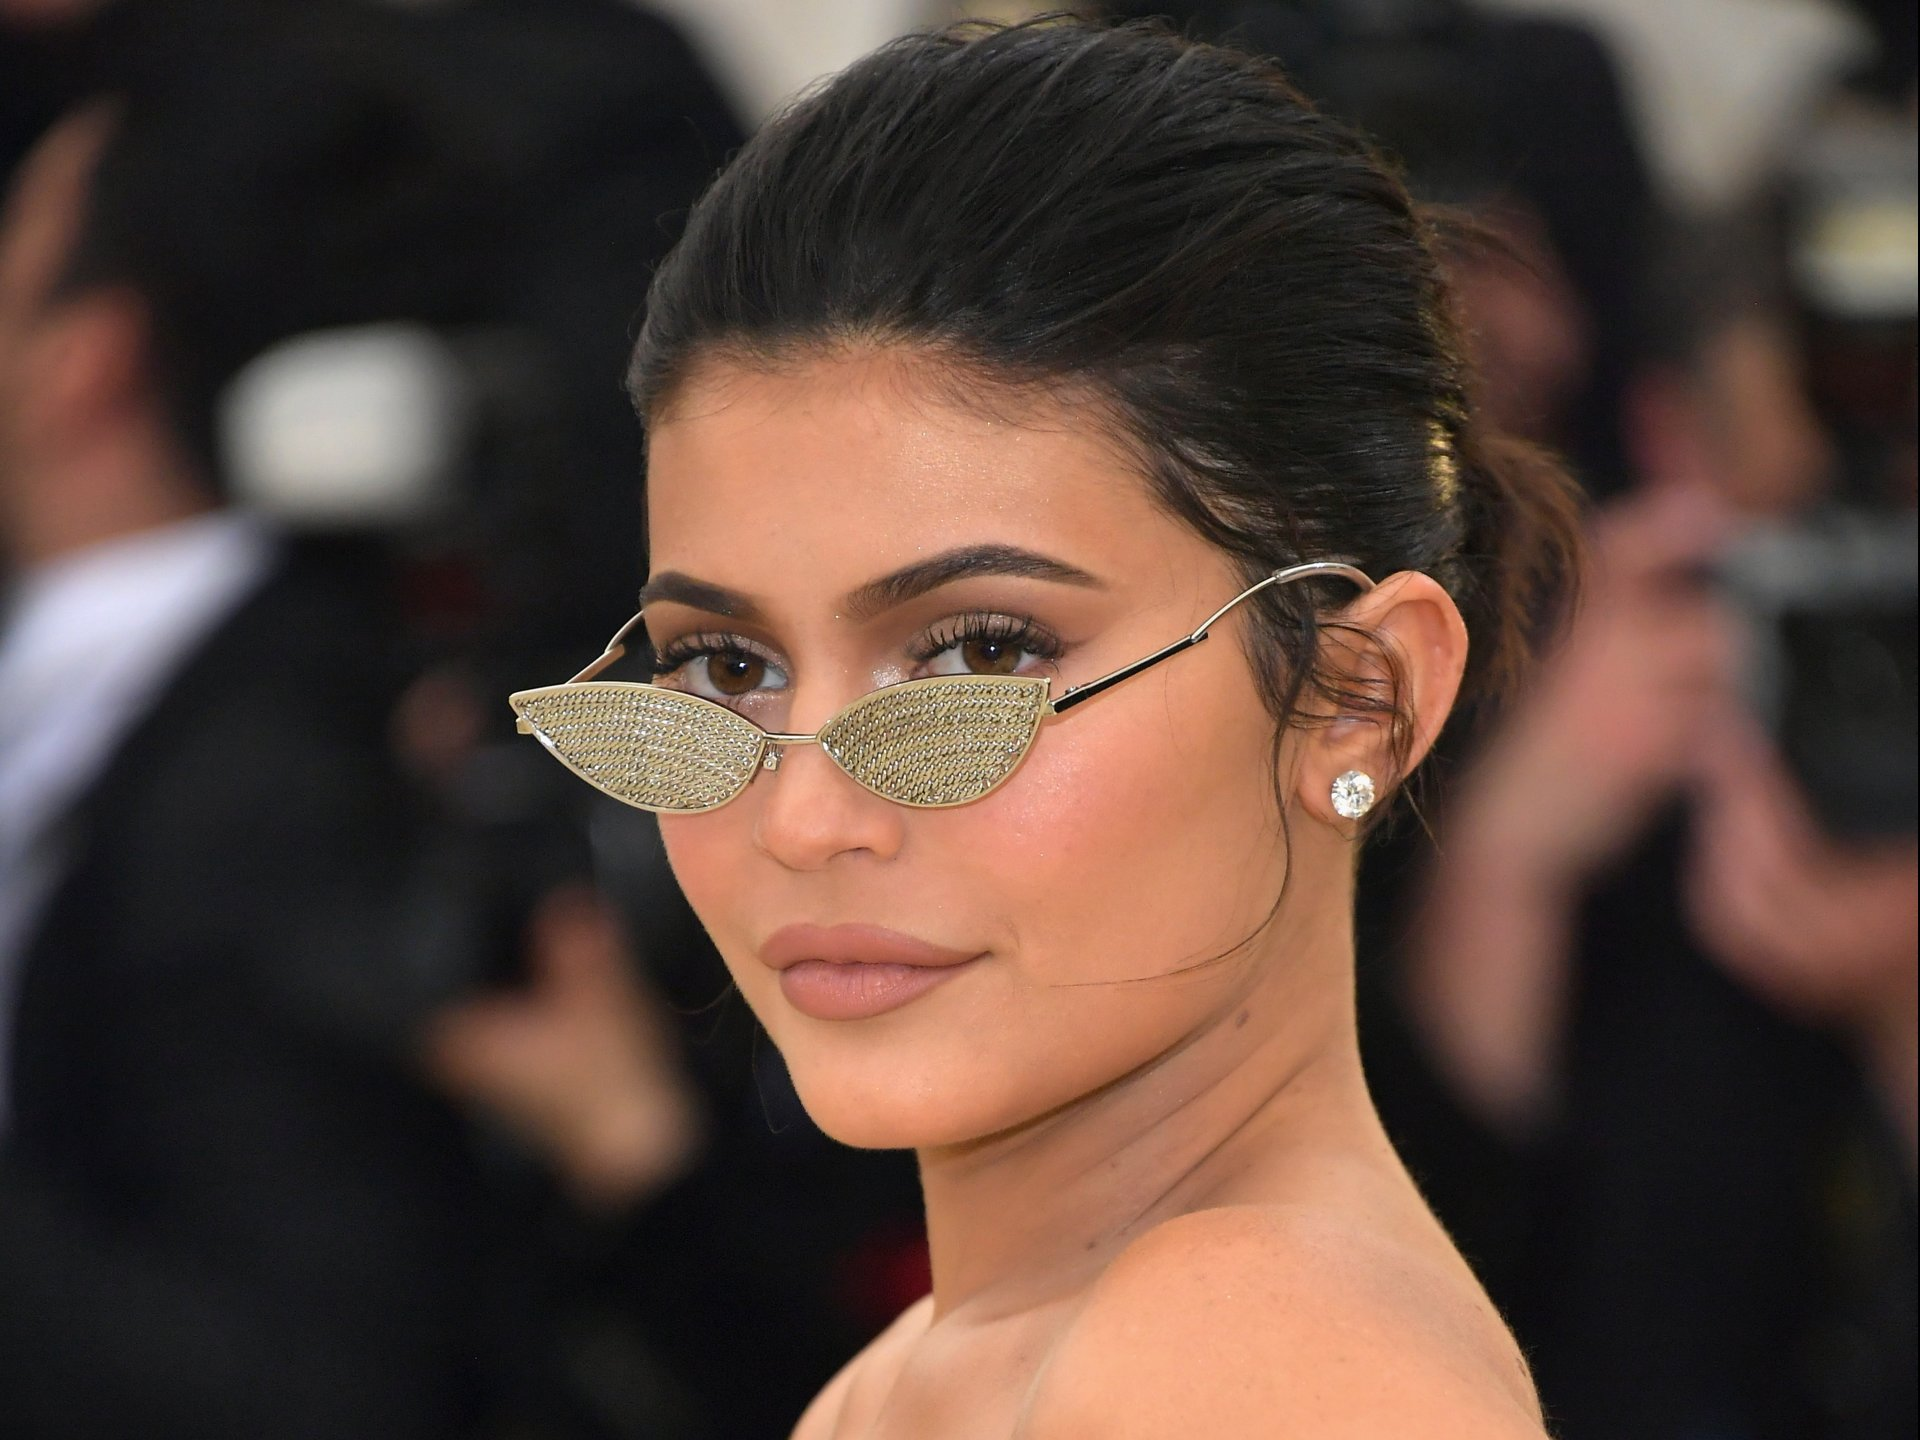 kylie jenner getty images